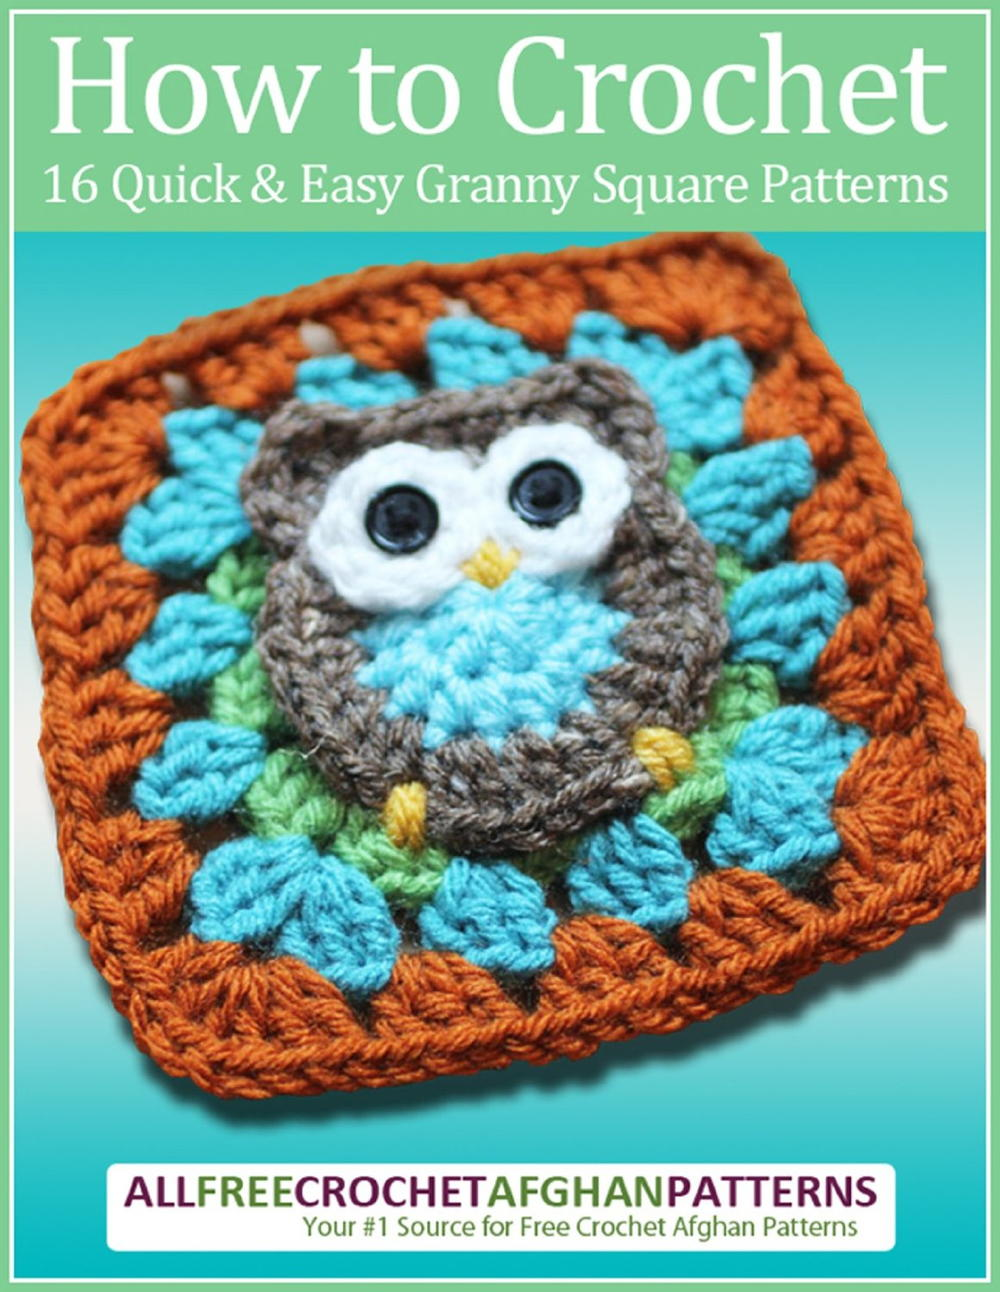 How to crochet 16 quick and easy granny square patterns free how to crochet 16 quick and easy granny square patterns free ebook allfreecrochetafghanpatterns bankloansurffo Images